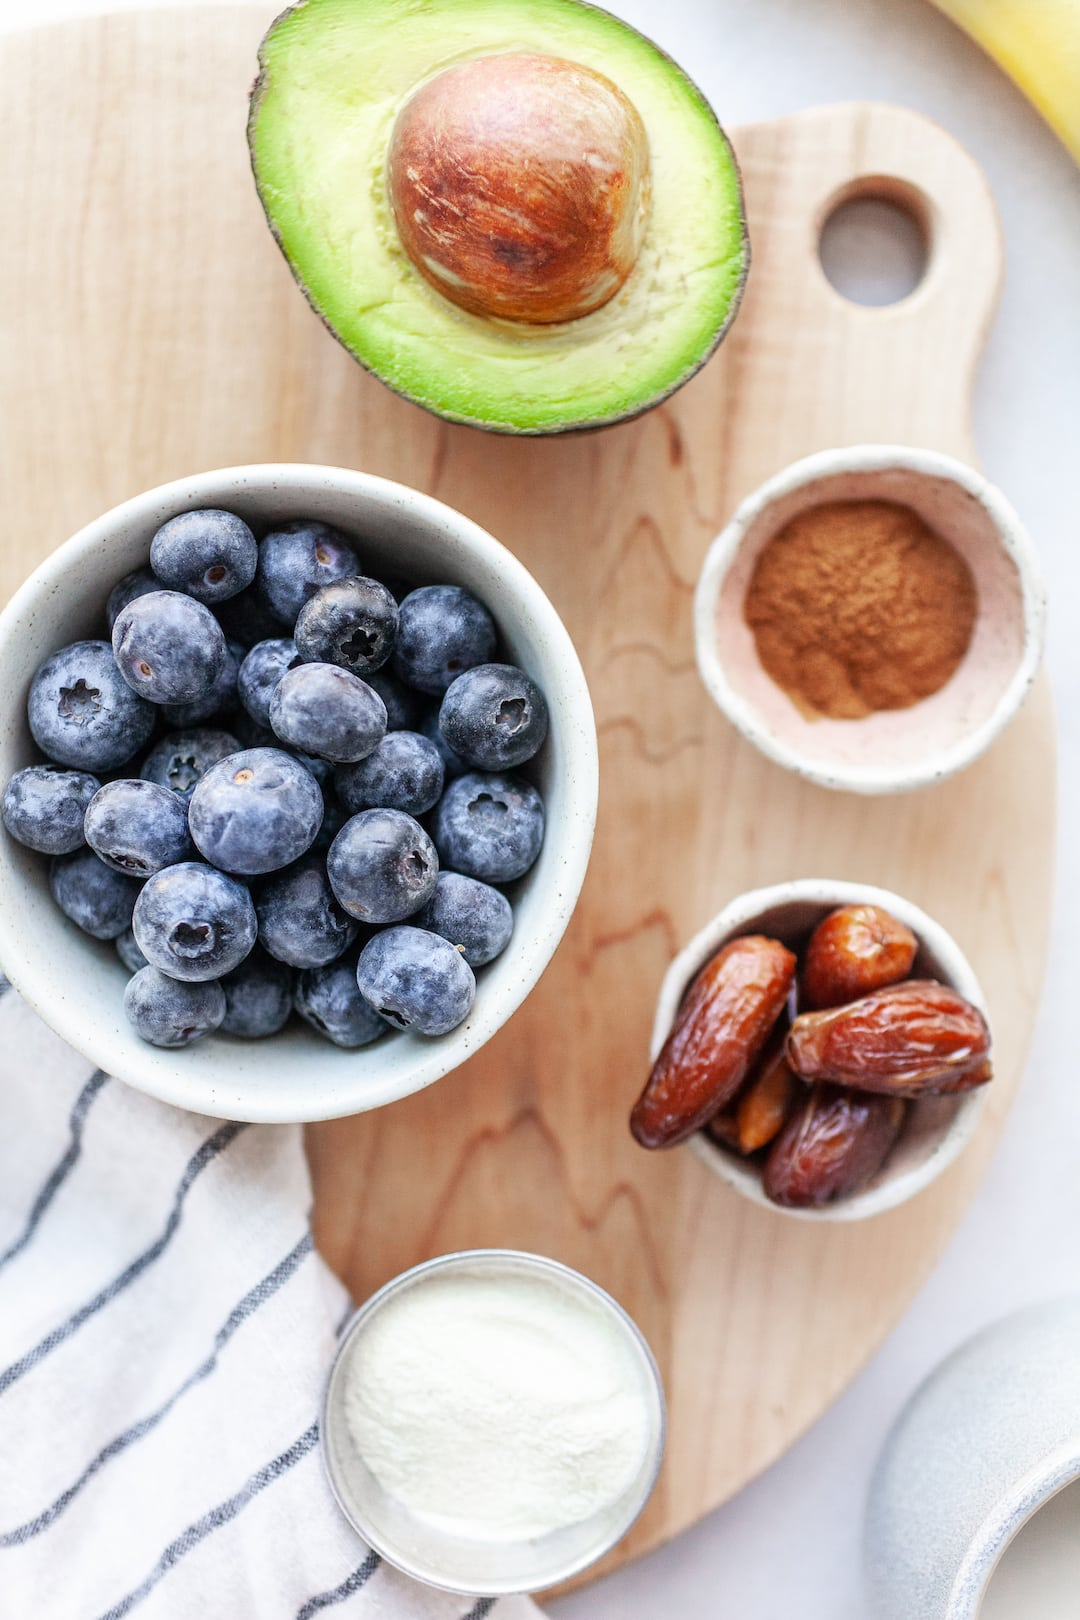 Flatlay of Creamy Blueberry Avocado Smoothie ingredients - blueberries, dates, avocado, cinnamon, banana, protein powder